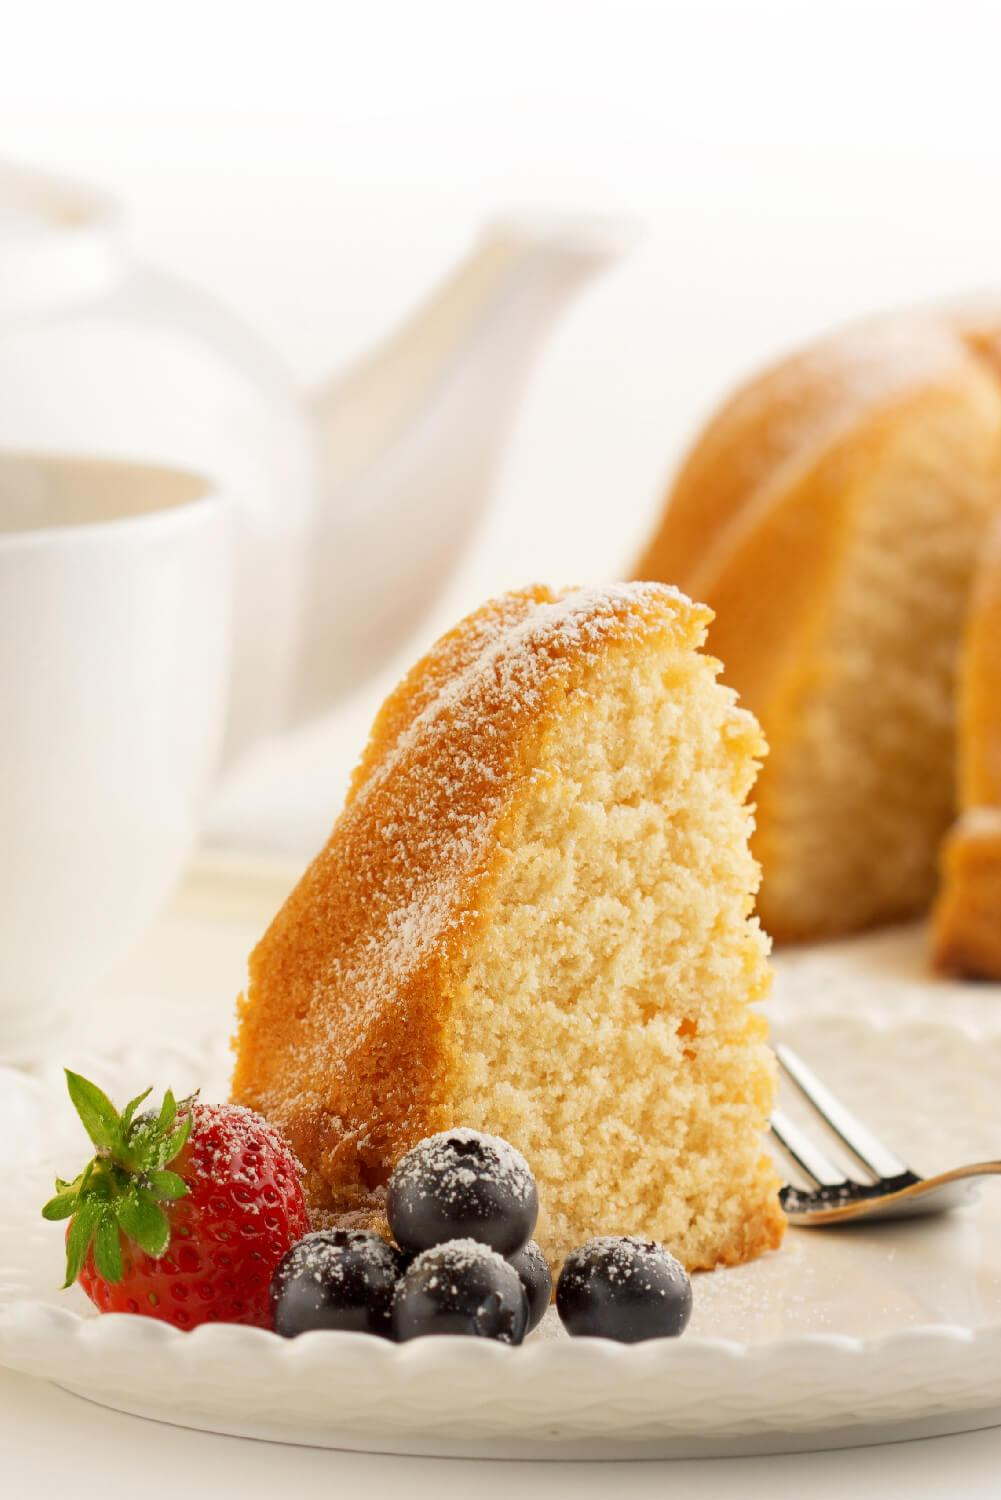 RICH, SOFT AND INDULGENT, OUR CAKE MIXES ARE EASY TO PREPARE FOR ALL YOUR CELEBRATIONS